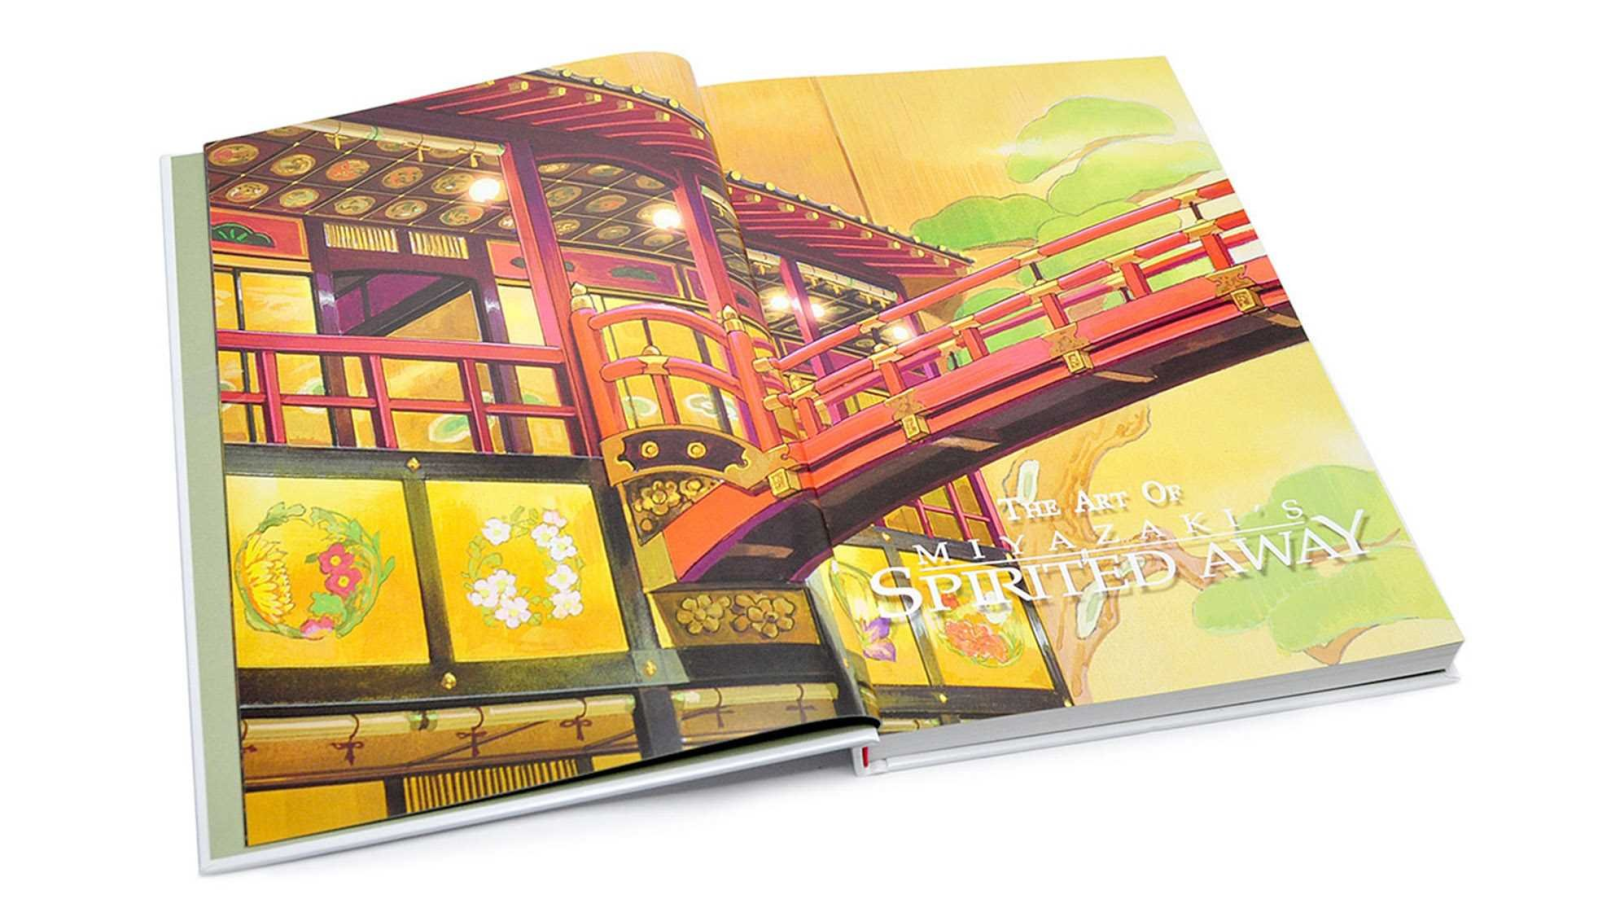 These hardcover art books from $16 would make great gifts: Spirited Away, Rick and Morty, more